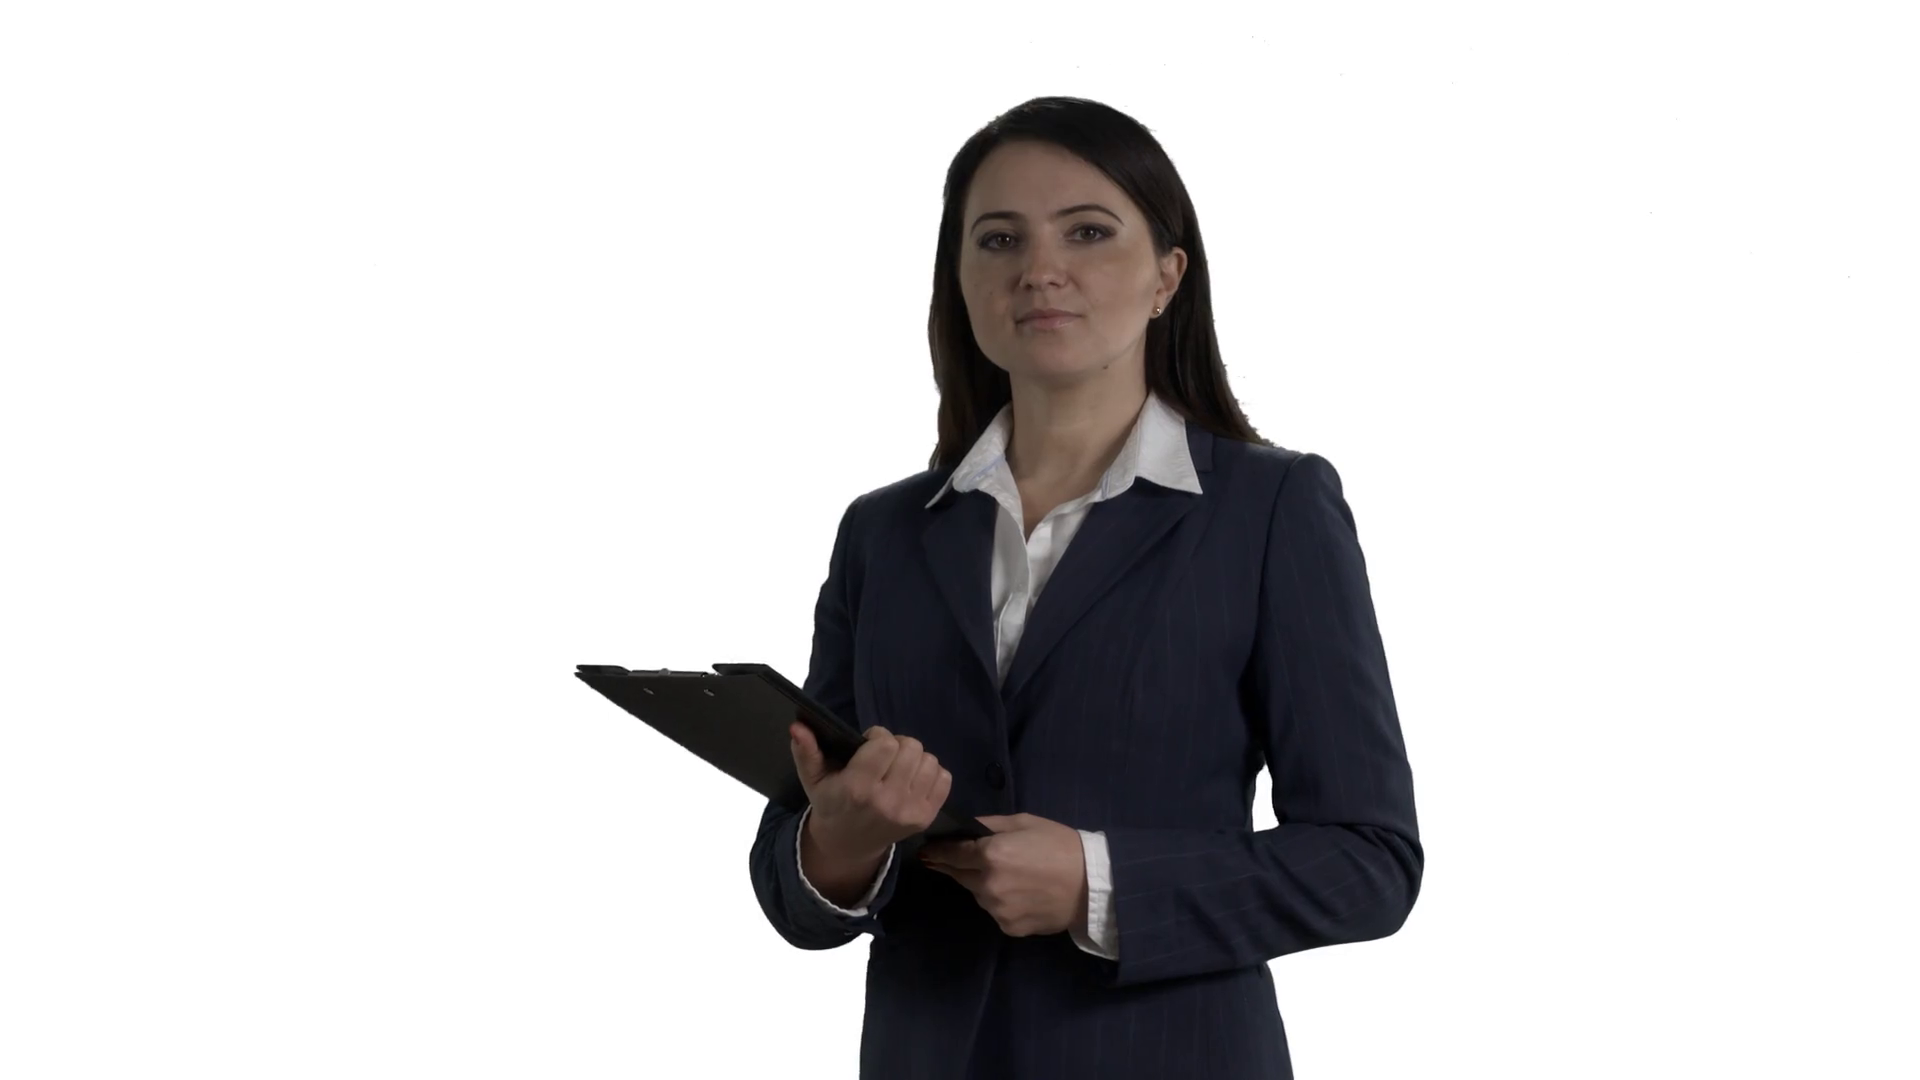 Business woman with folder for papers during a presentation or meeting  talking to camera on white background. 4k footage PNG with alpha channel. - Meeting HD PNG